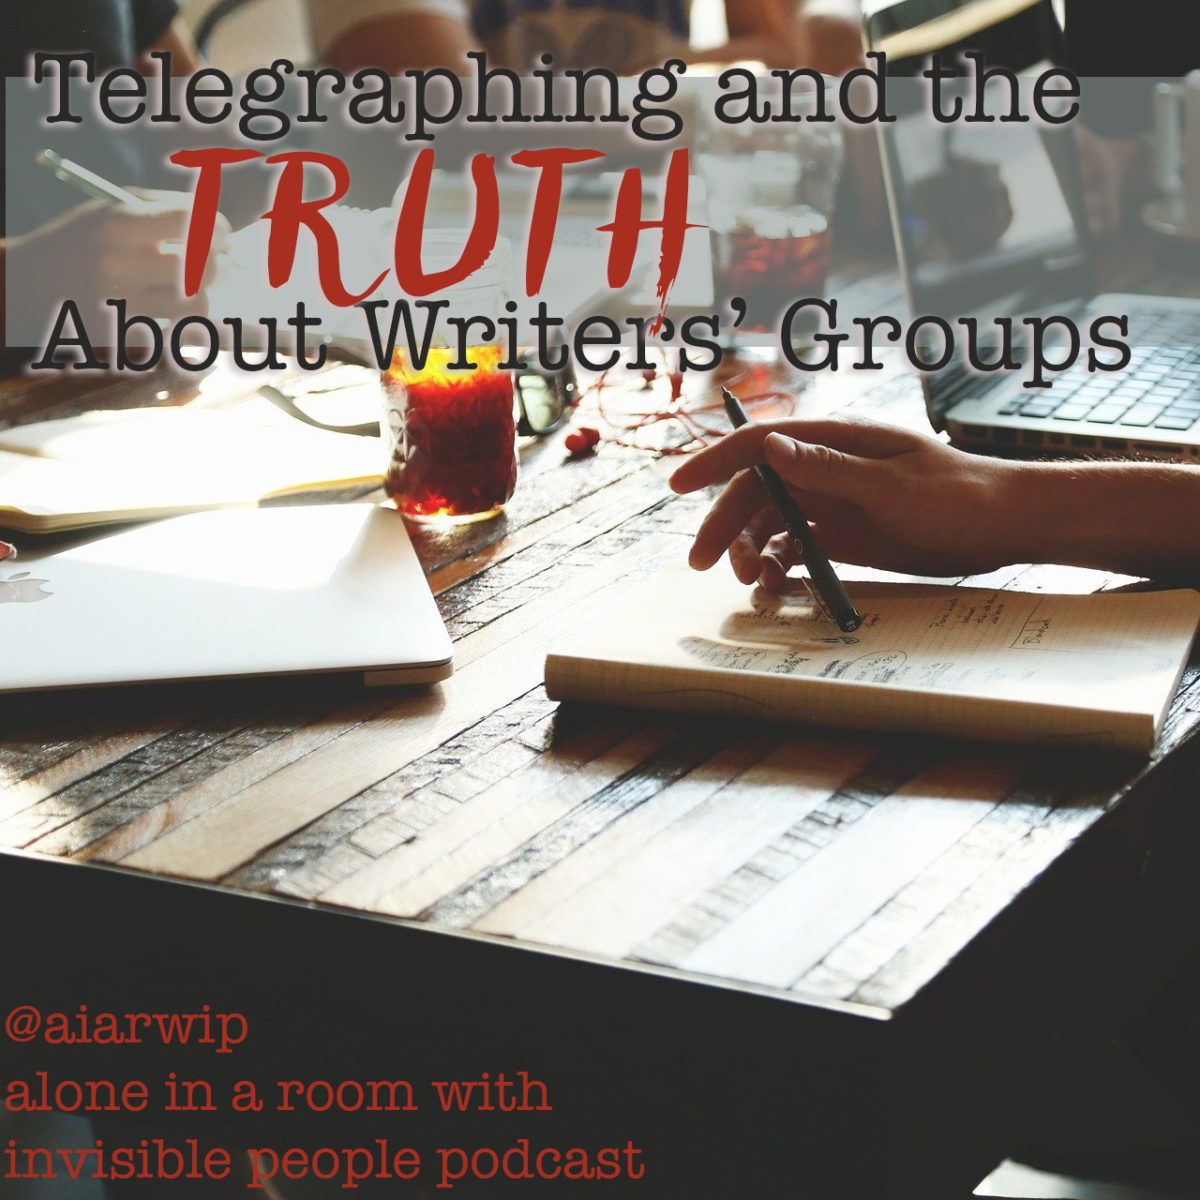 Show Notes for Episode 83: What is Telegraphing and the Truth About Writers' Groups